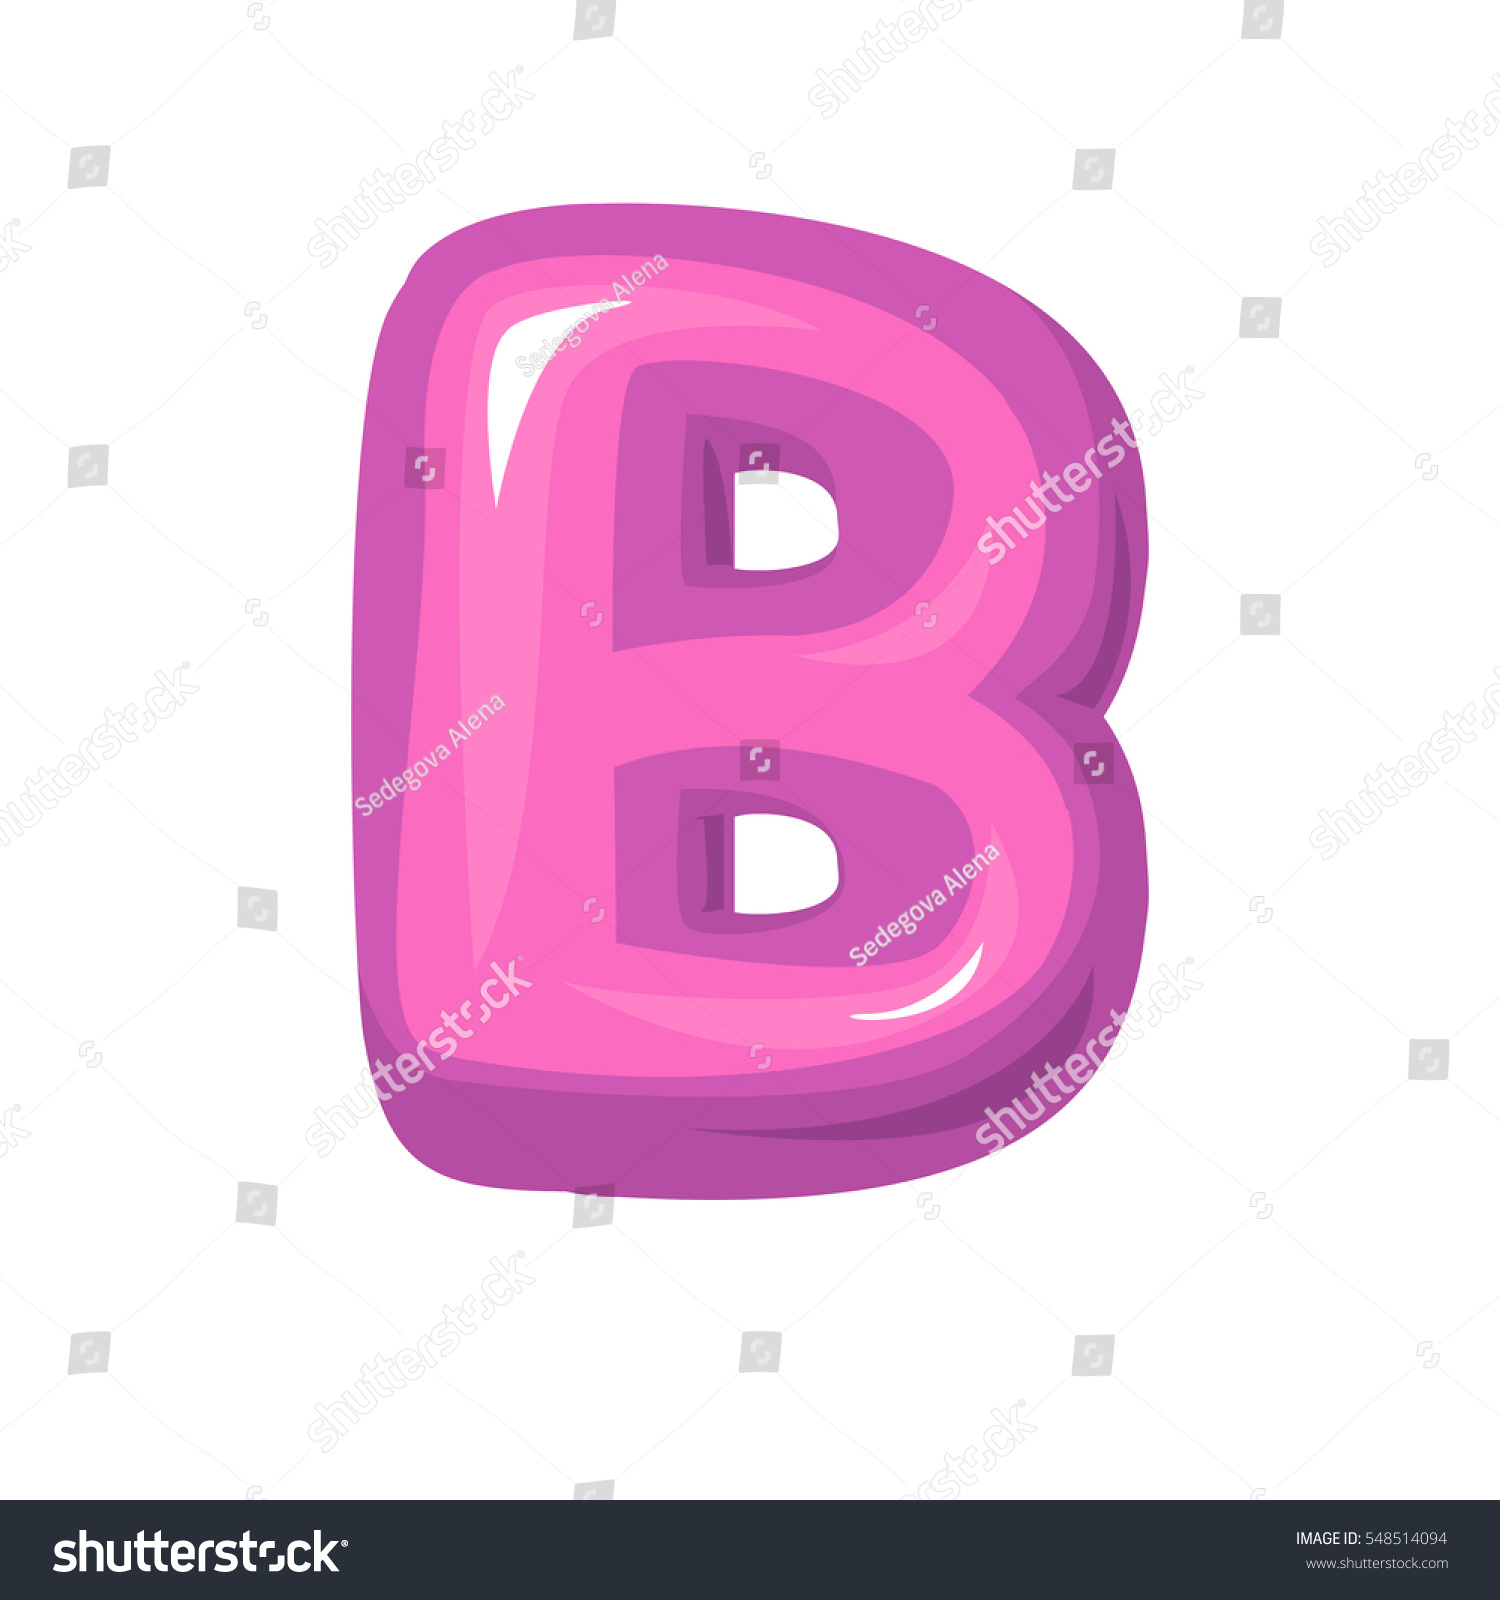 Pink Letter B Bubble Bold B Stock Vector (Royalty Free) 548514094 ...